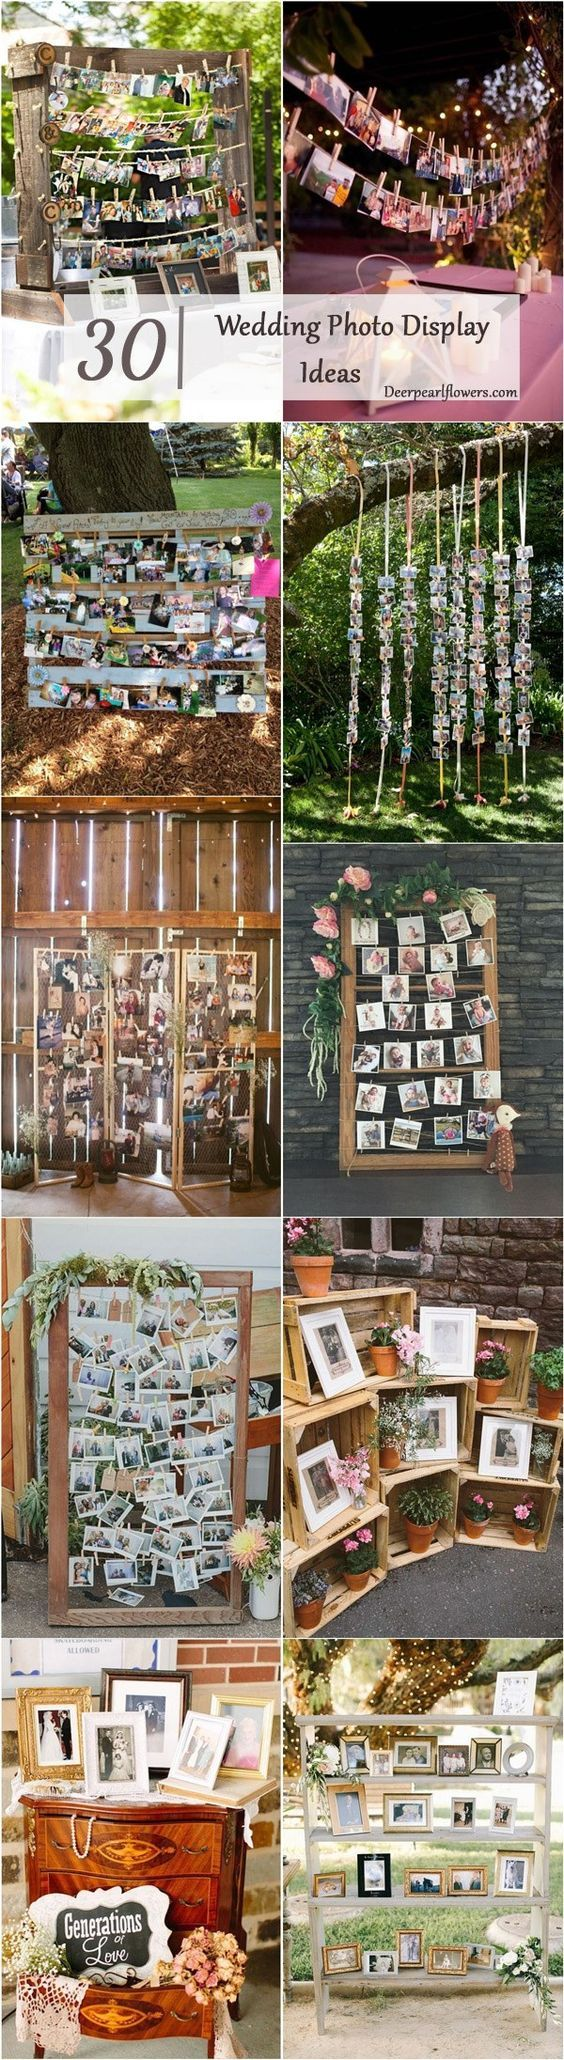 Pallet wedding decor ideas   Wedding Photo Display Ideas Youull Want To Try Immediately